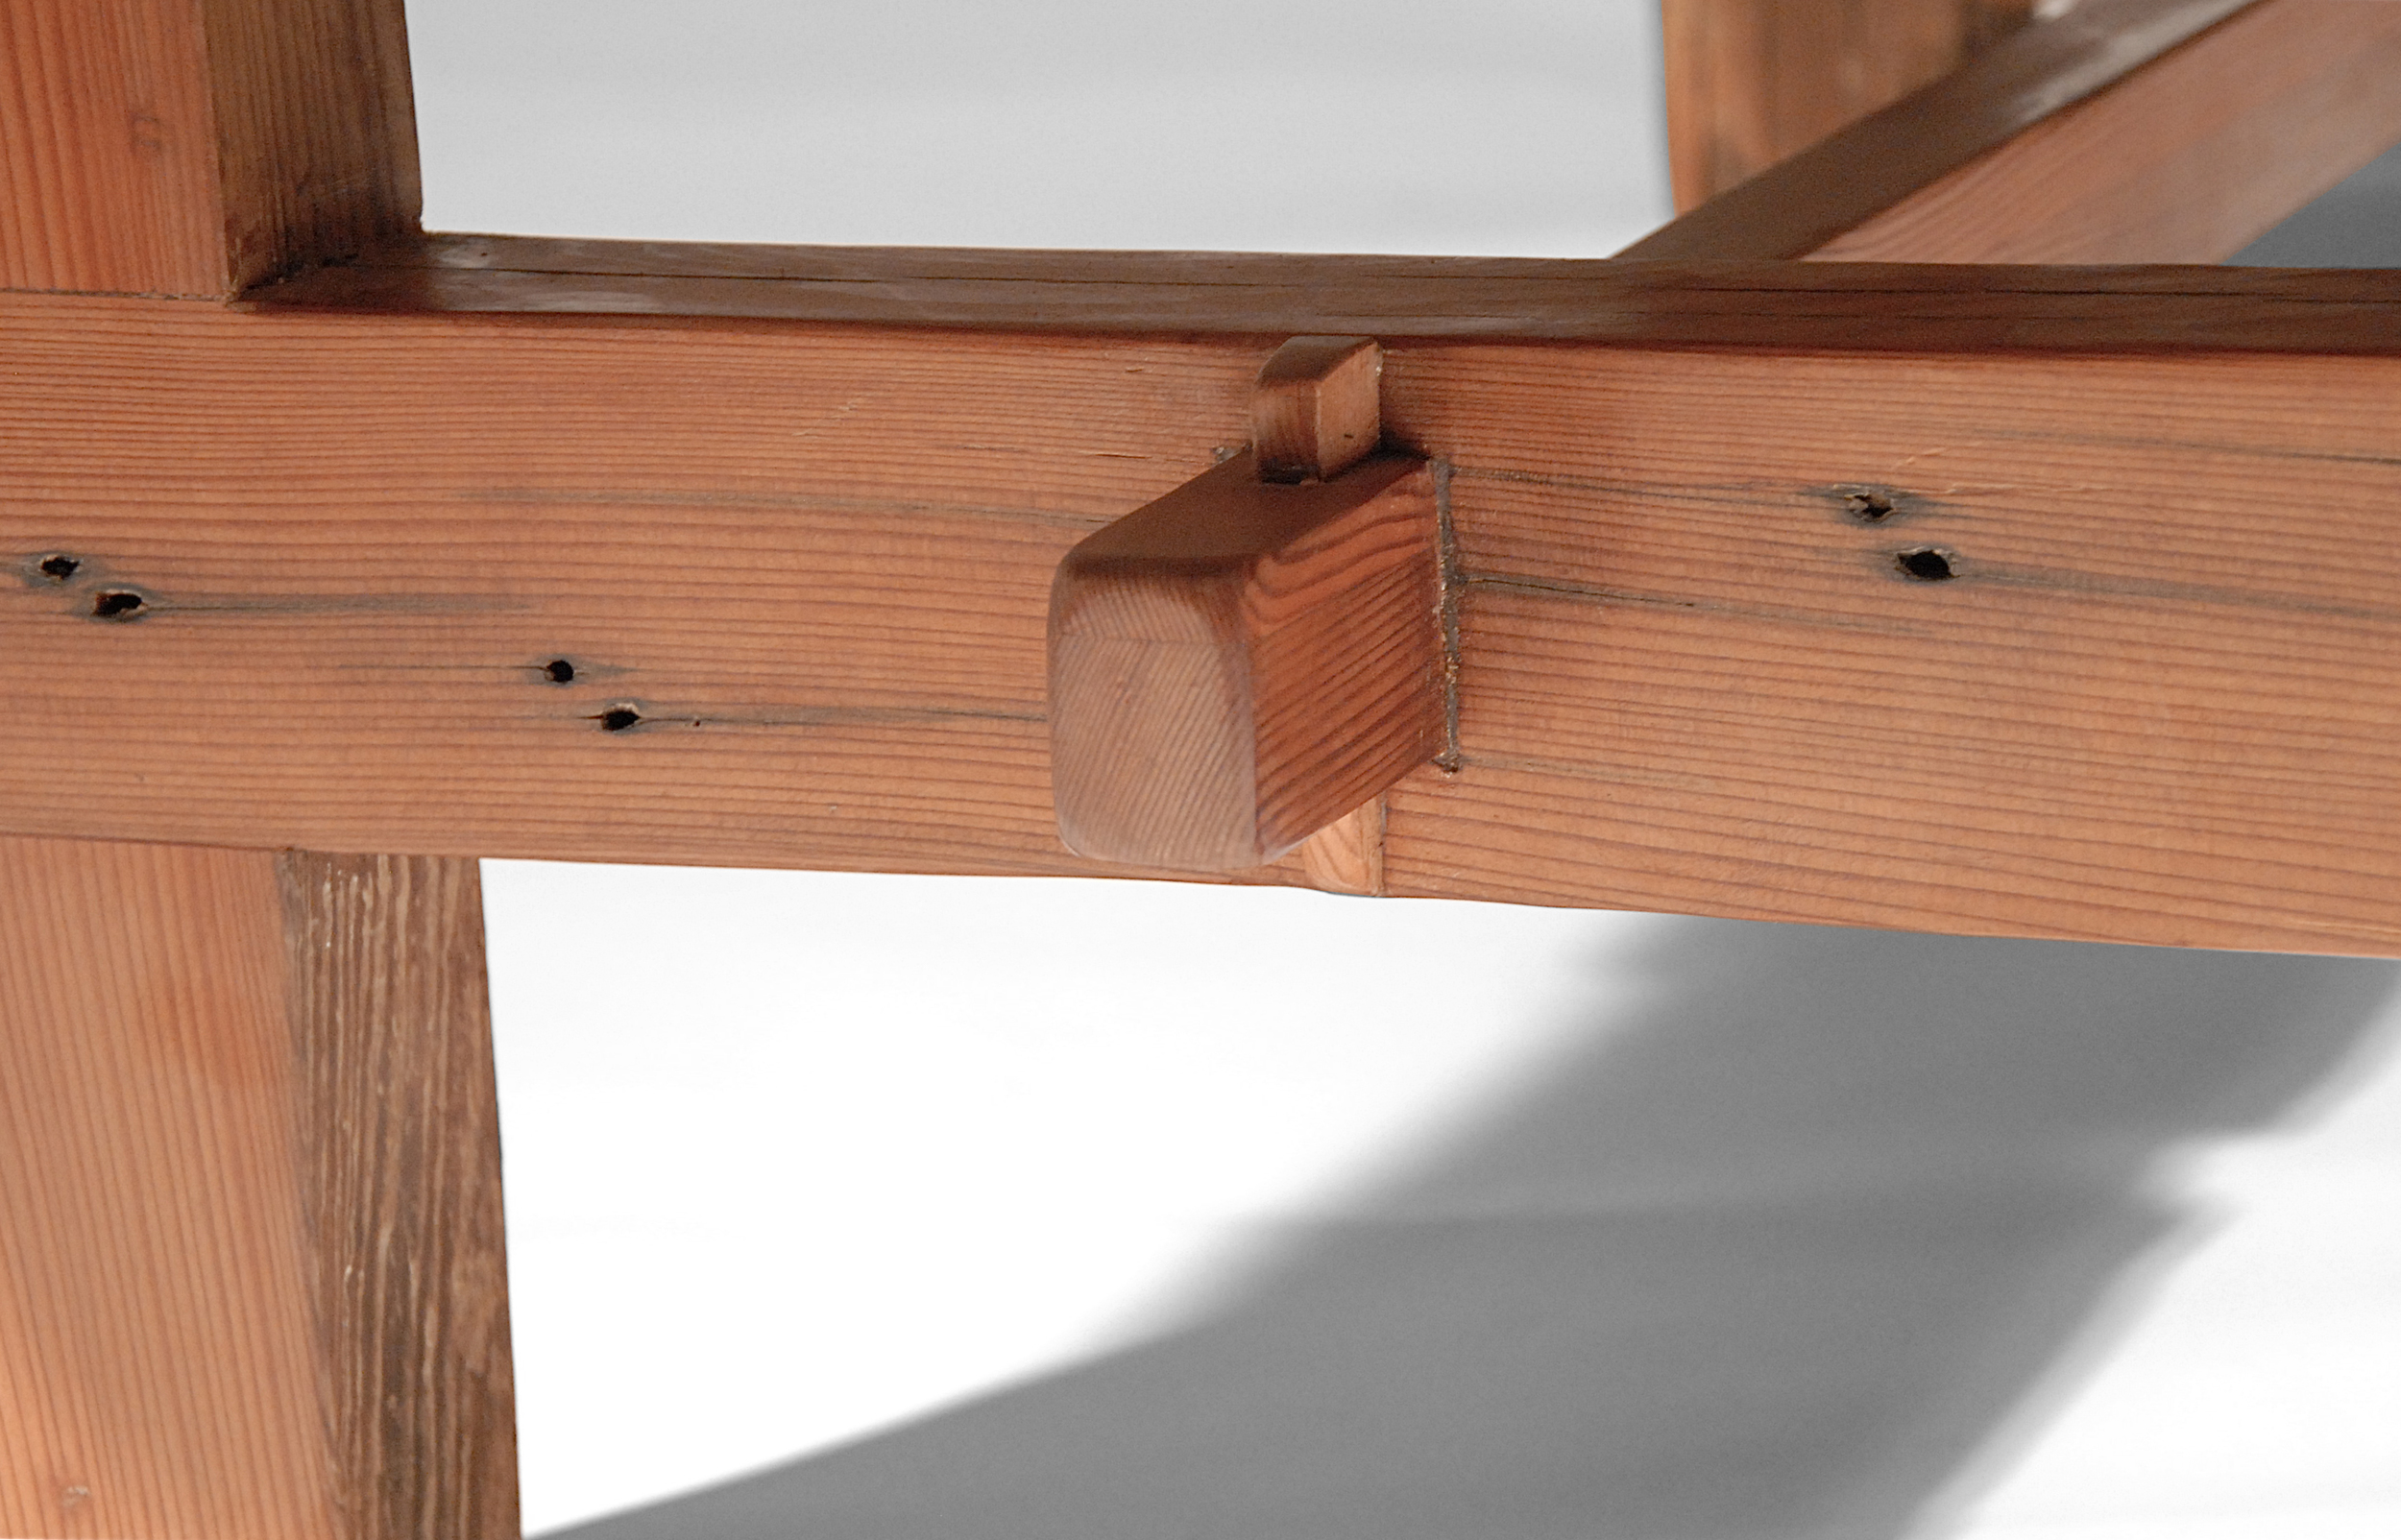 Through tenon wedge detail